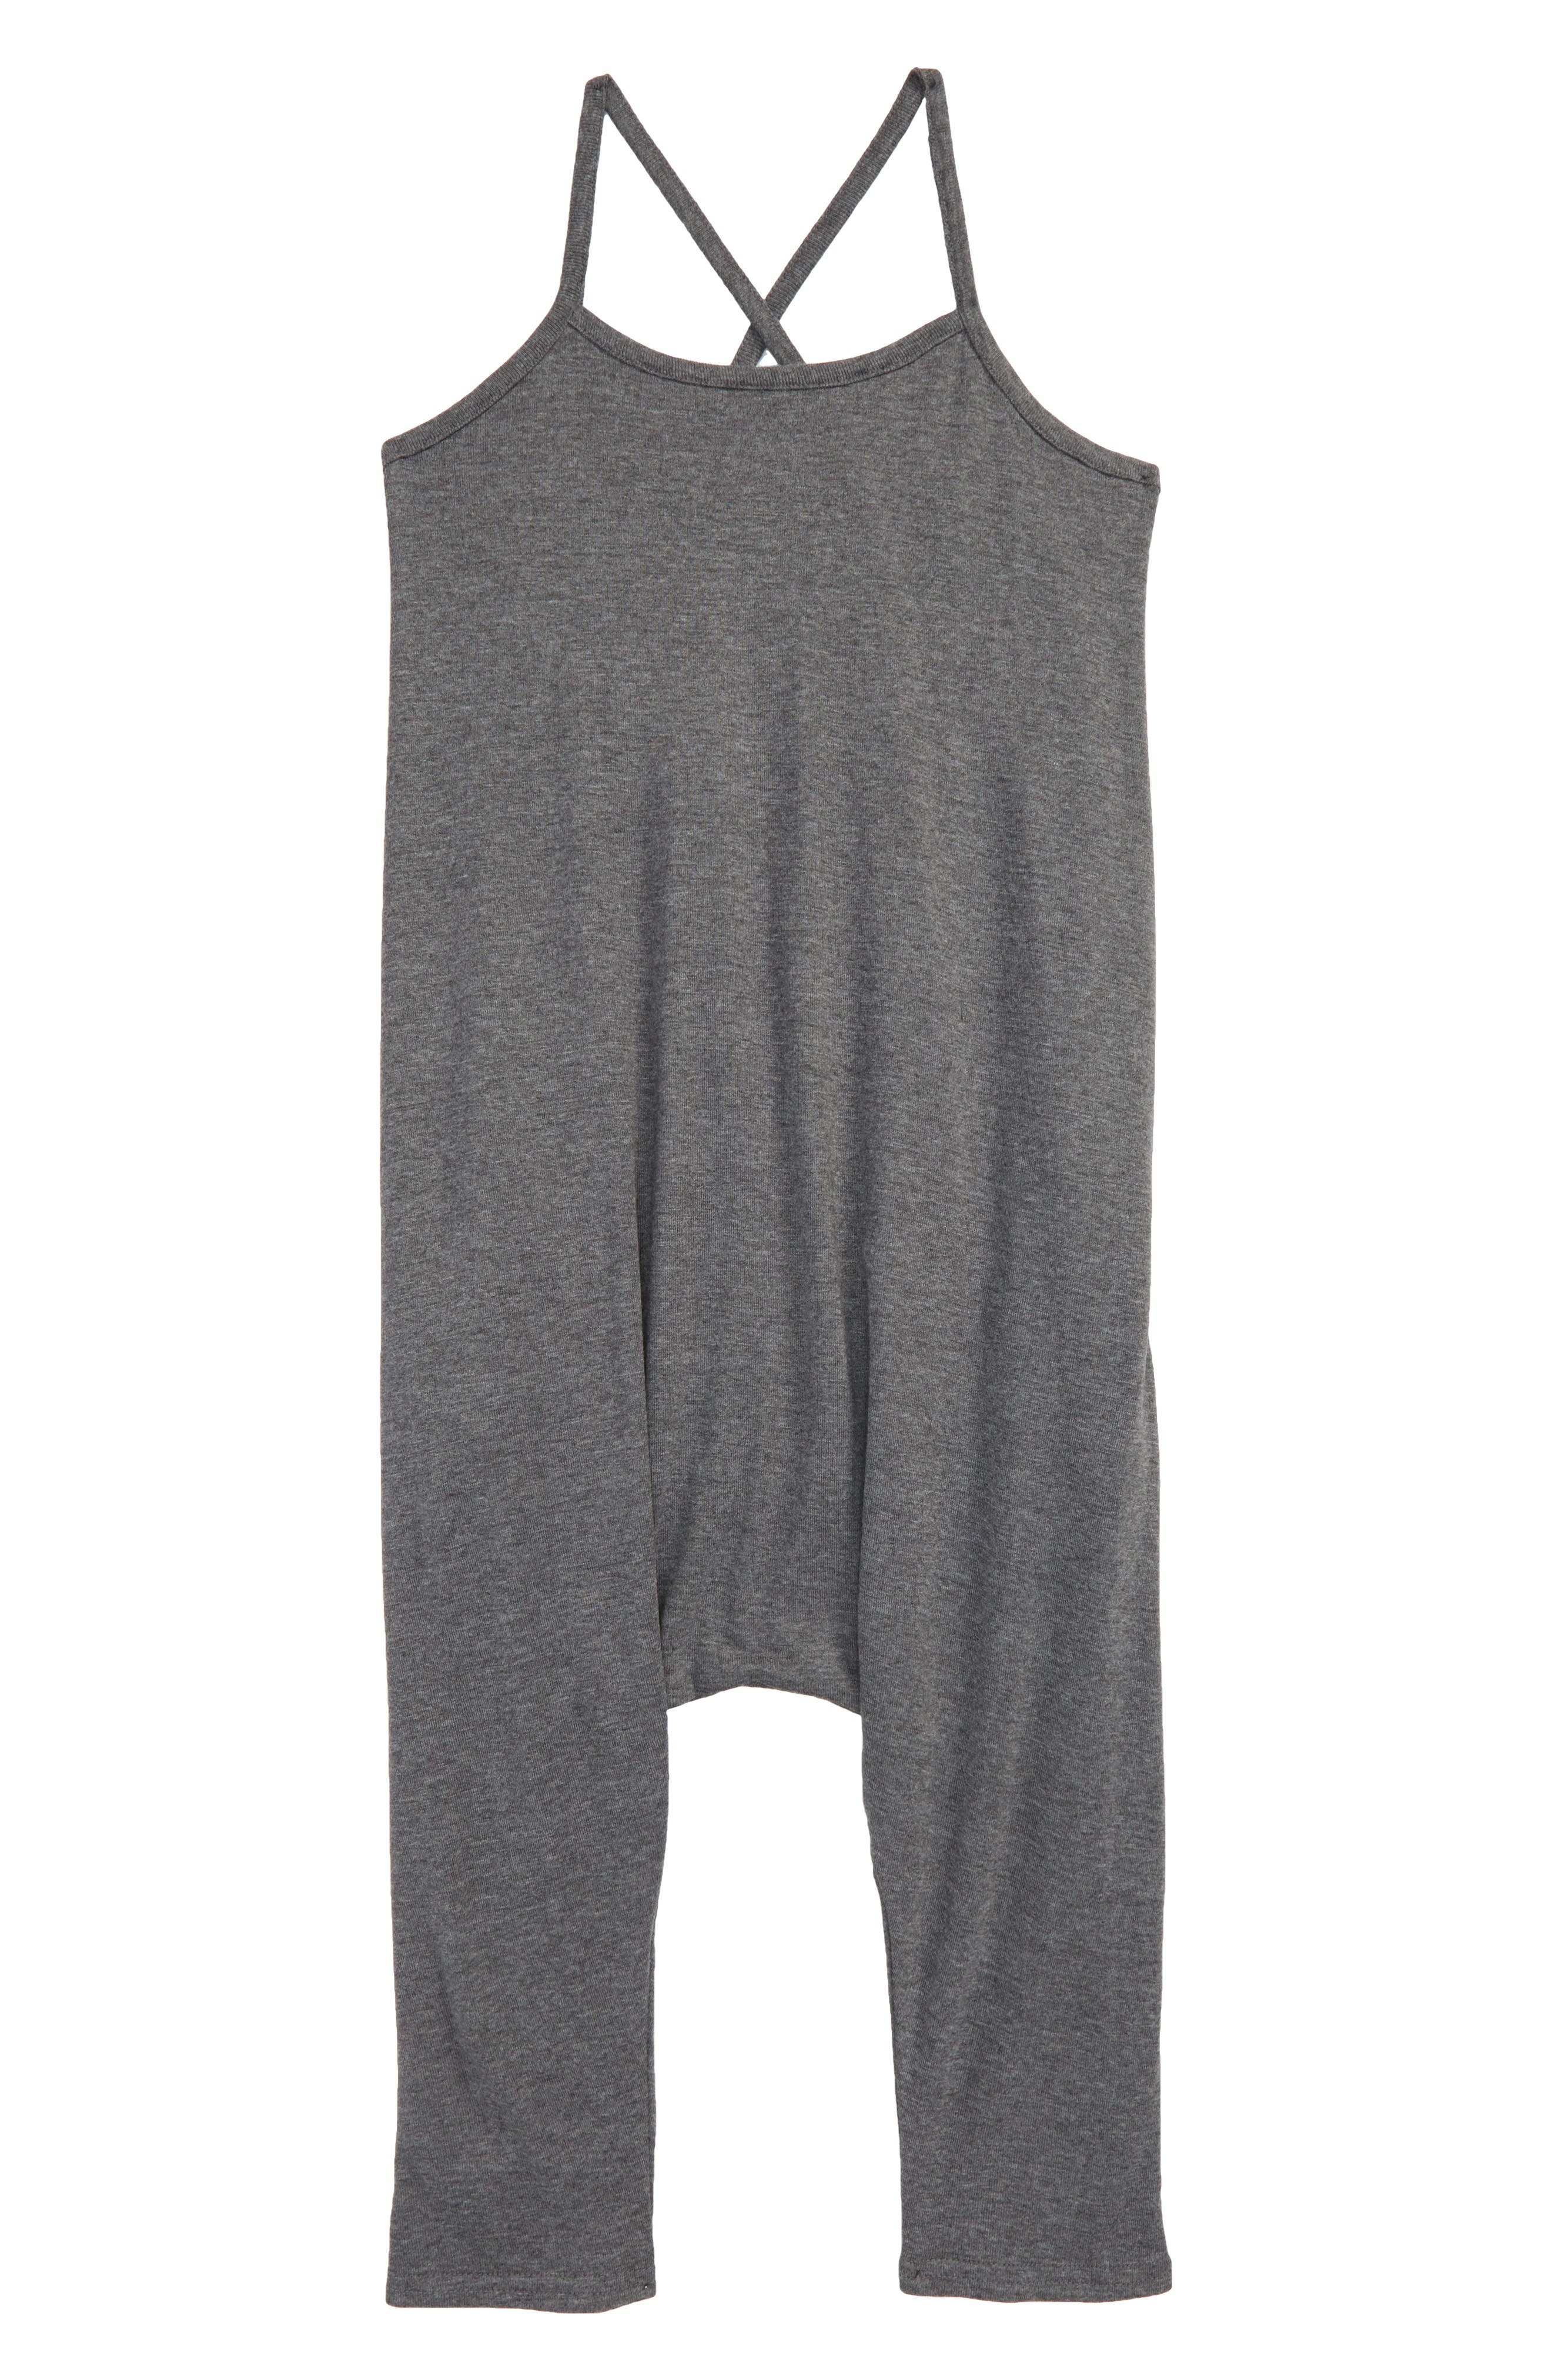 Knit Tank Romper,                             Main thumbnail 1, color,                             Grey Charcoal Heather